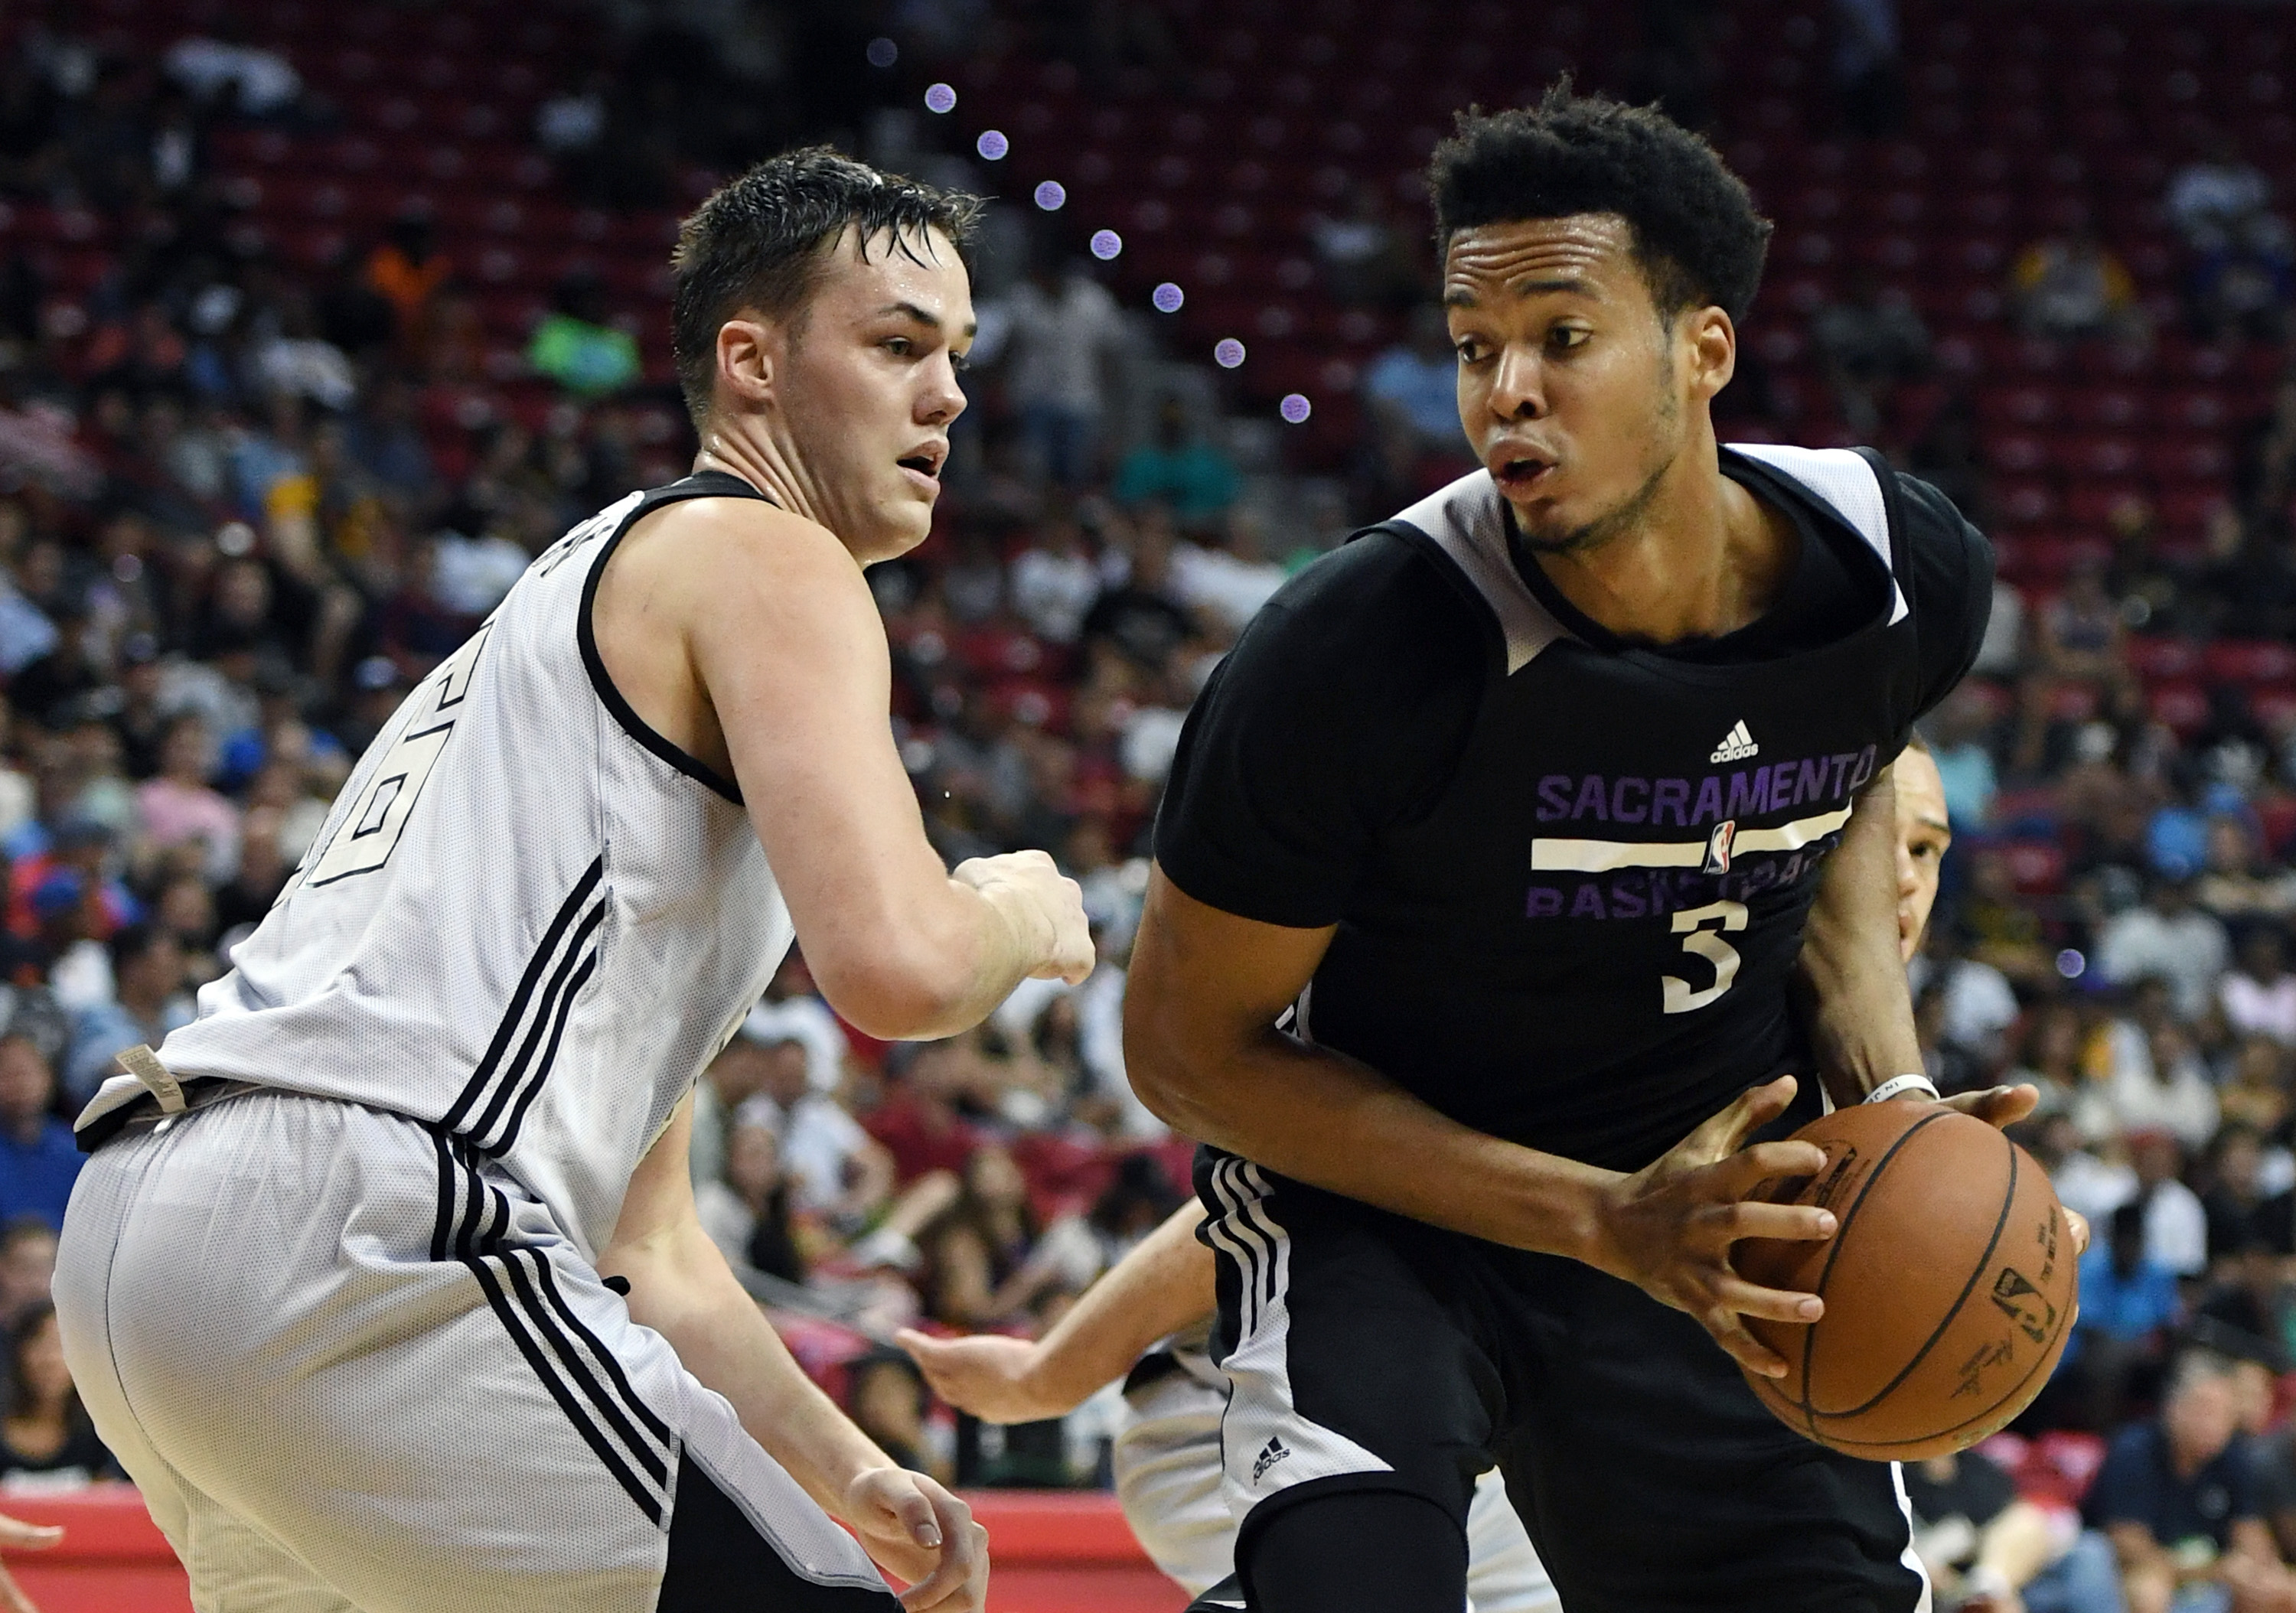 813861728-2017-las-vegas-summer-league-sacramento-kings-v-milwaukee-bucks.jpg